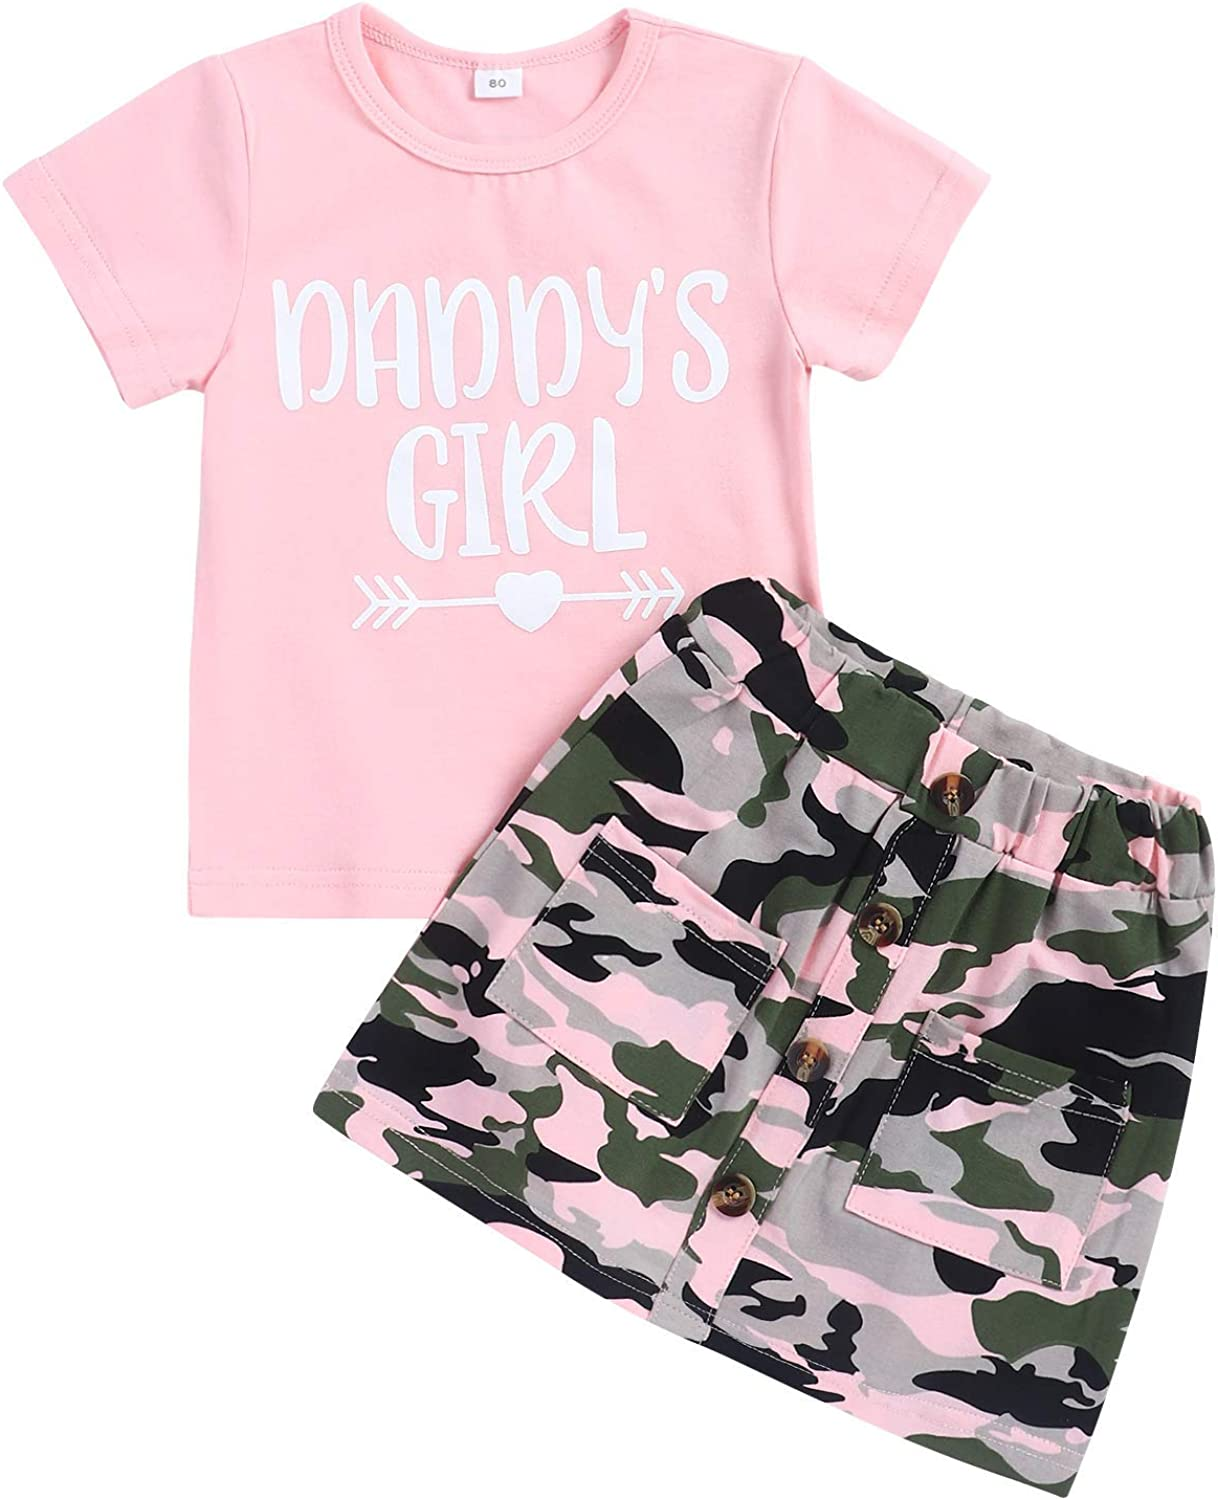 Toddler Baby Girl Funny Letter Clothes Daddy's Girl Tops with Camouflage Skirt 2PCS Summer Outfit Set